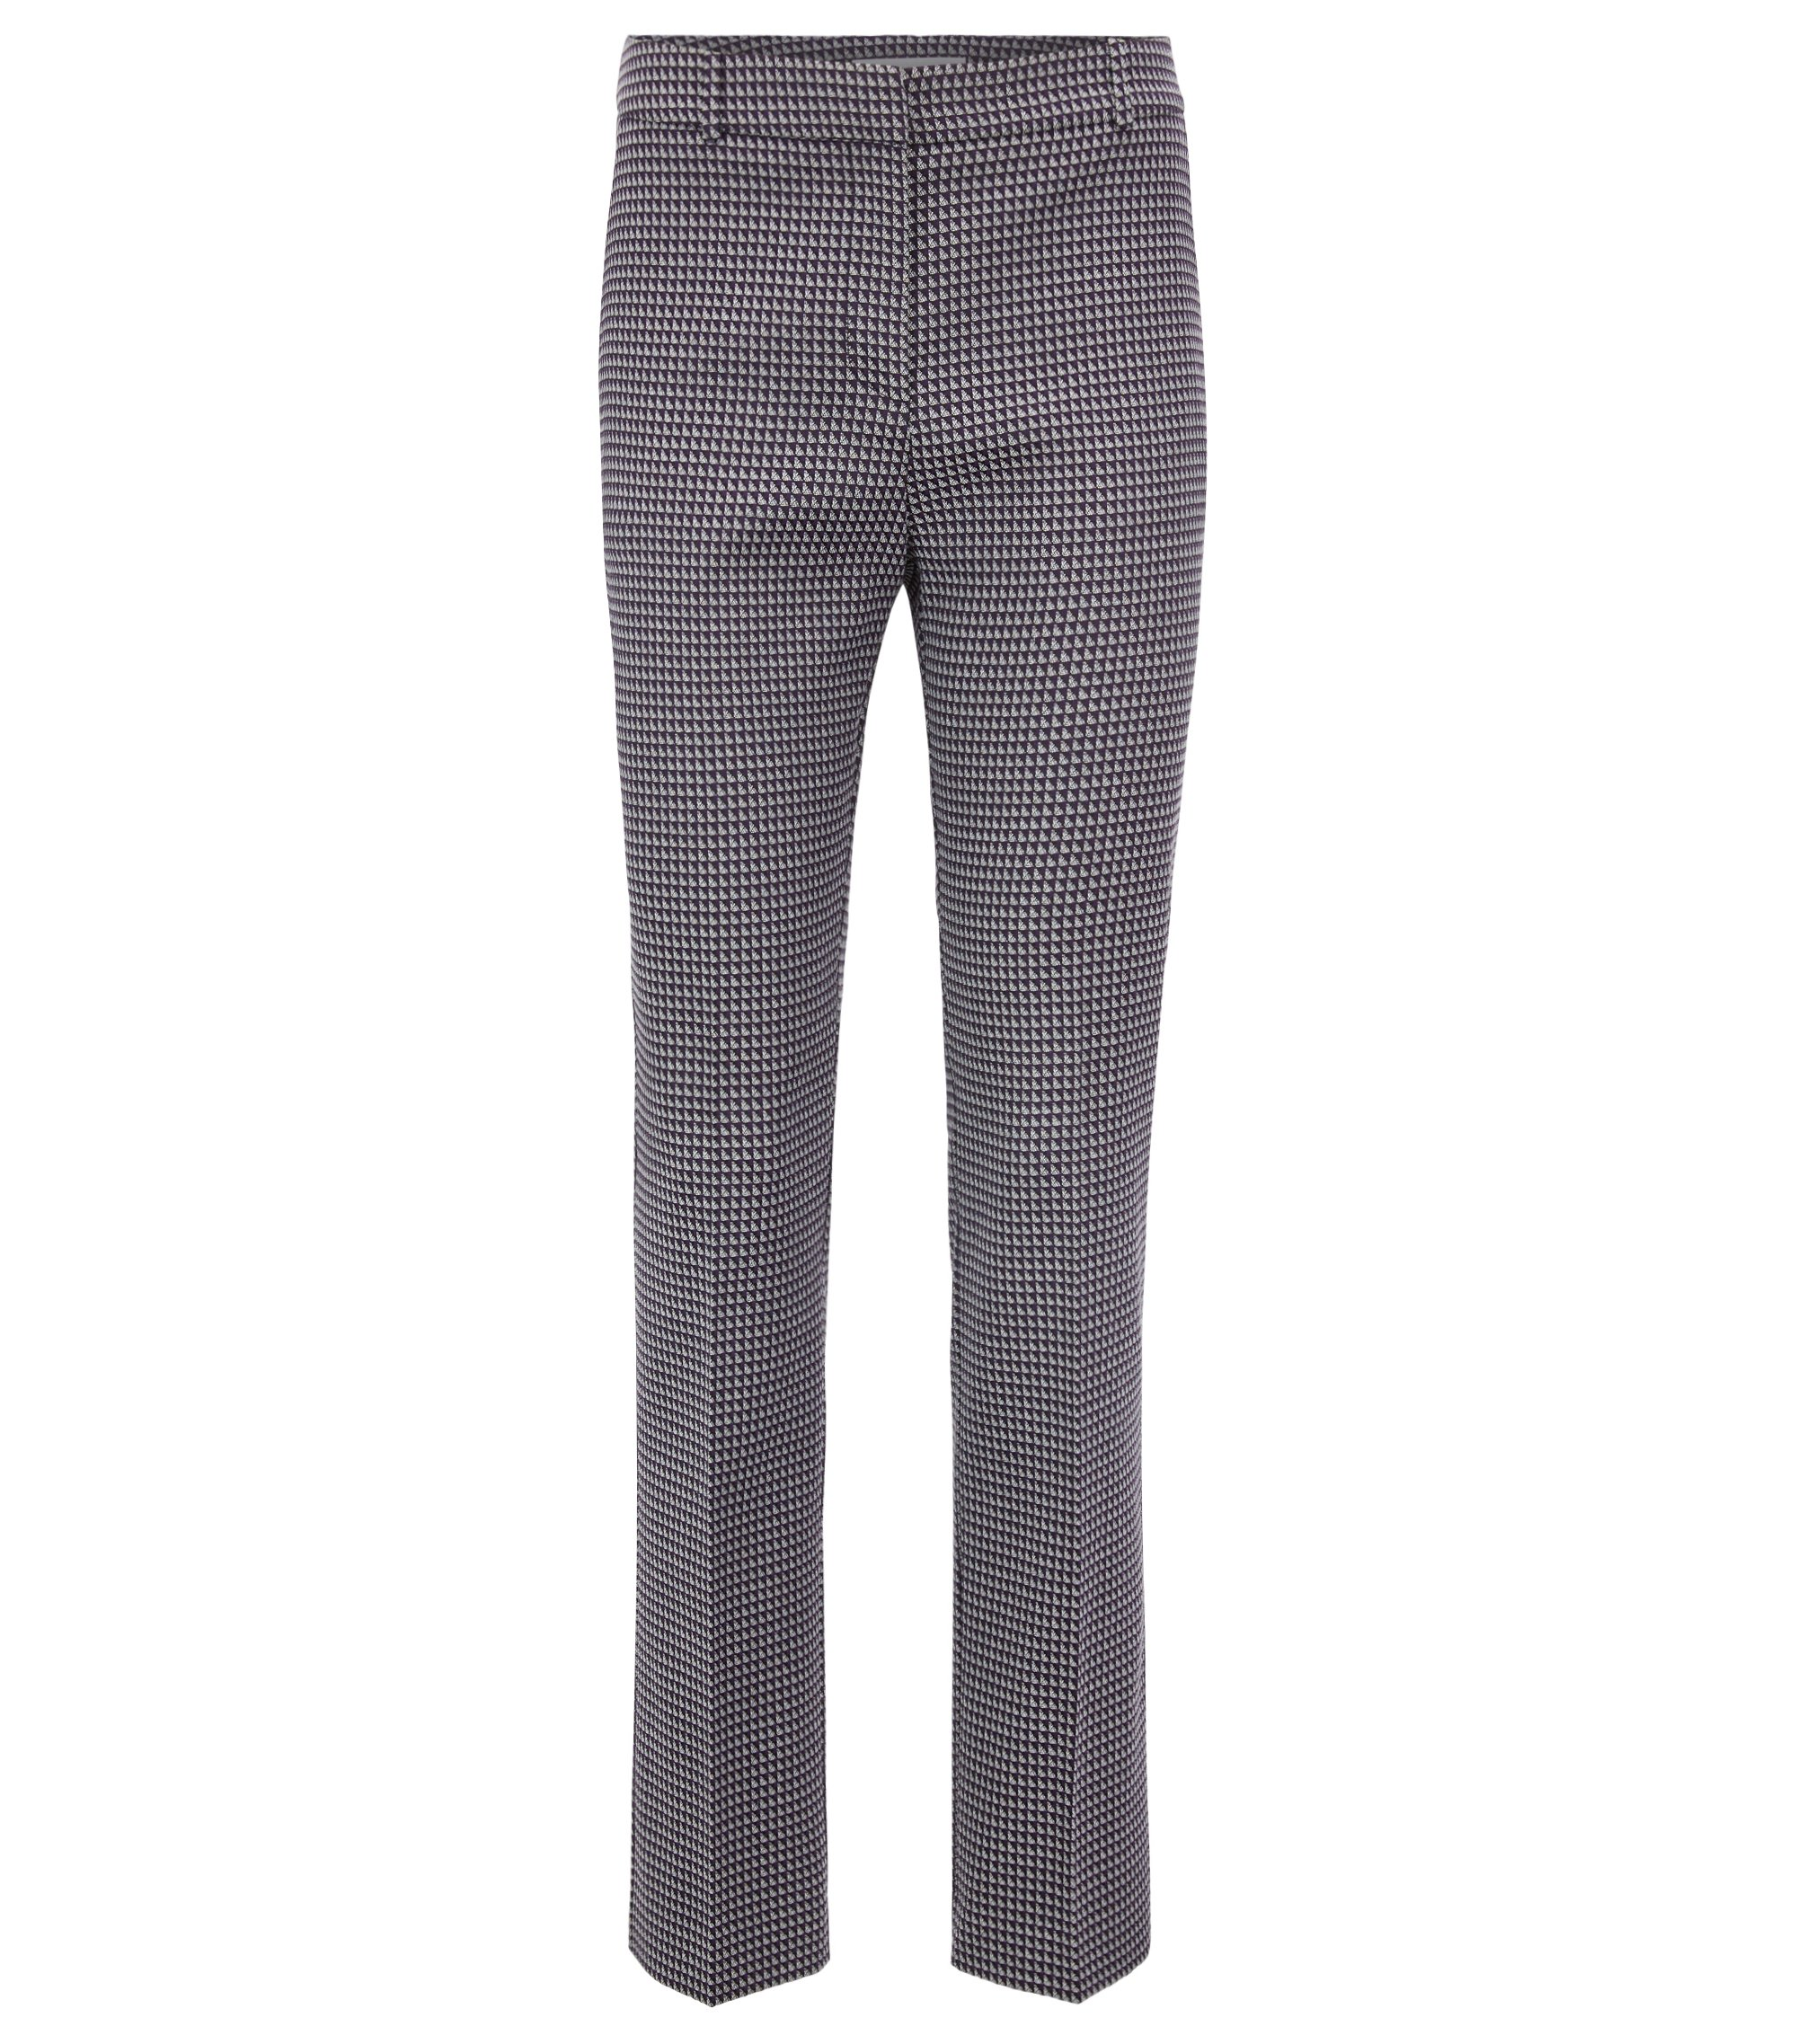 Regular-fit trousers in stretch cotton-blend jacquard, Patterned